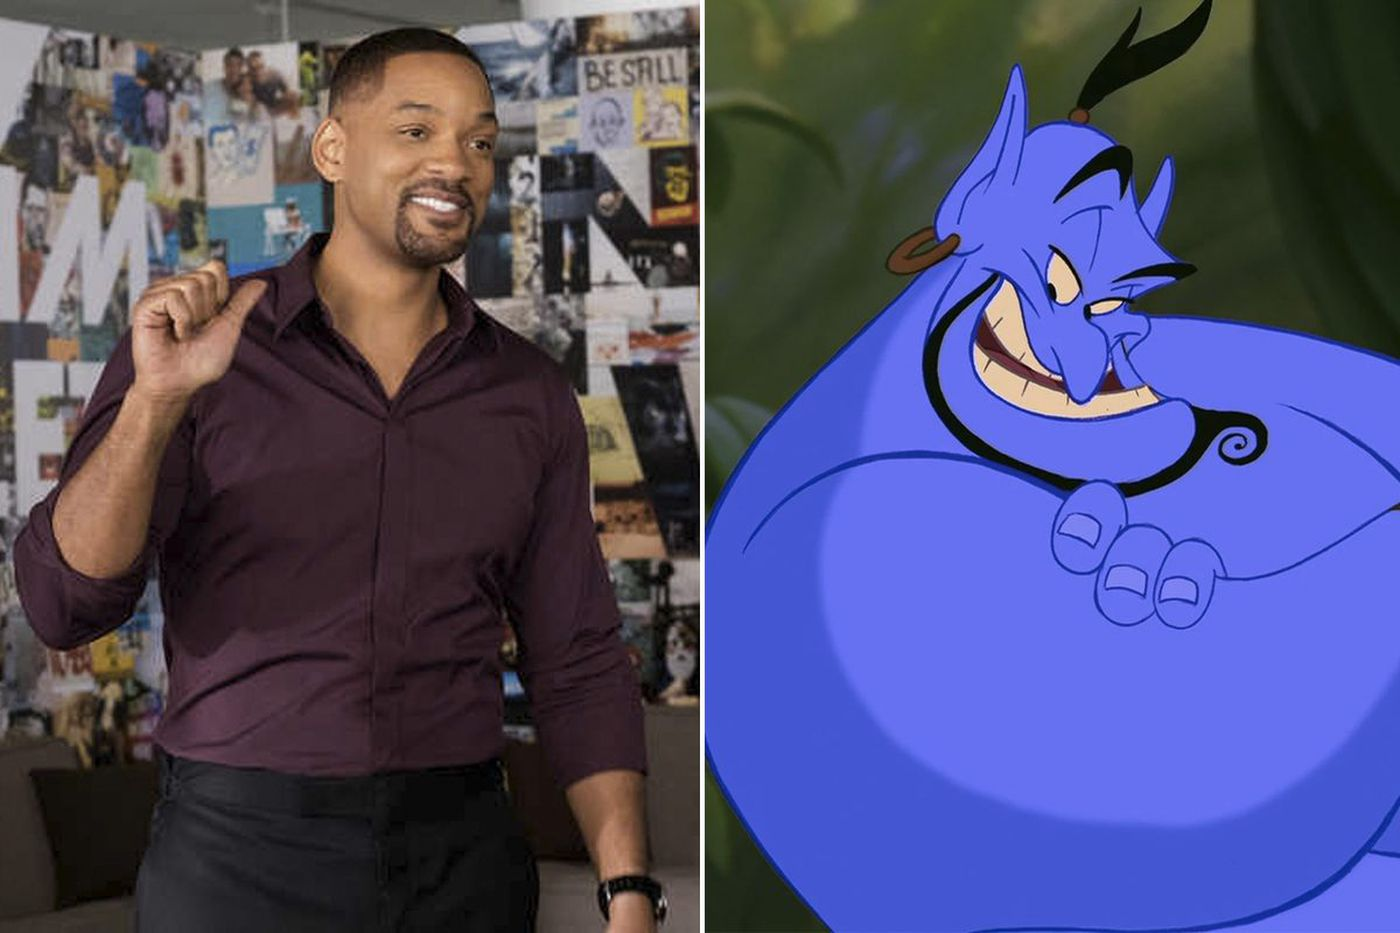 It's official: Will Smith is Disney's next Genie in live-action 'Aladdin' adaptation